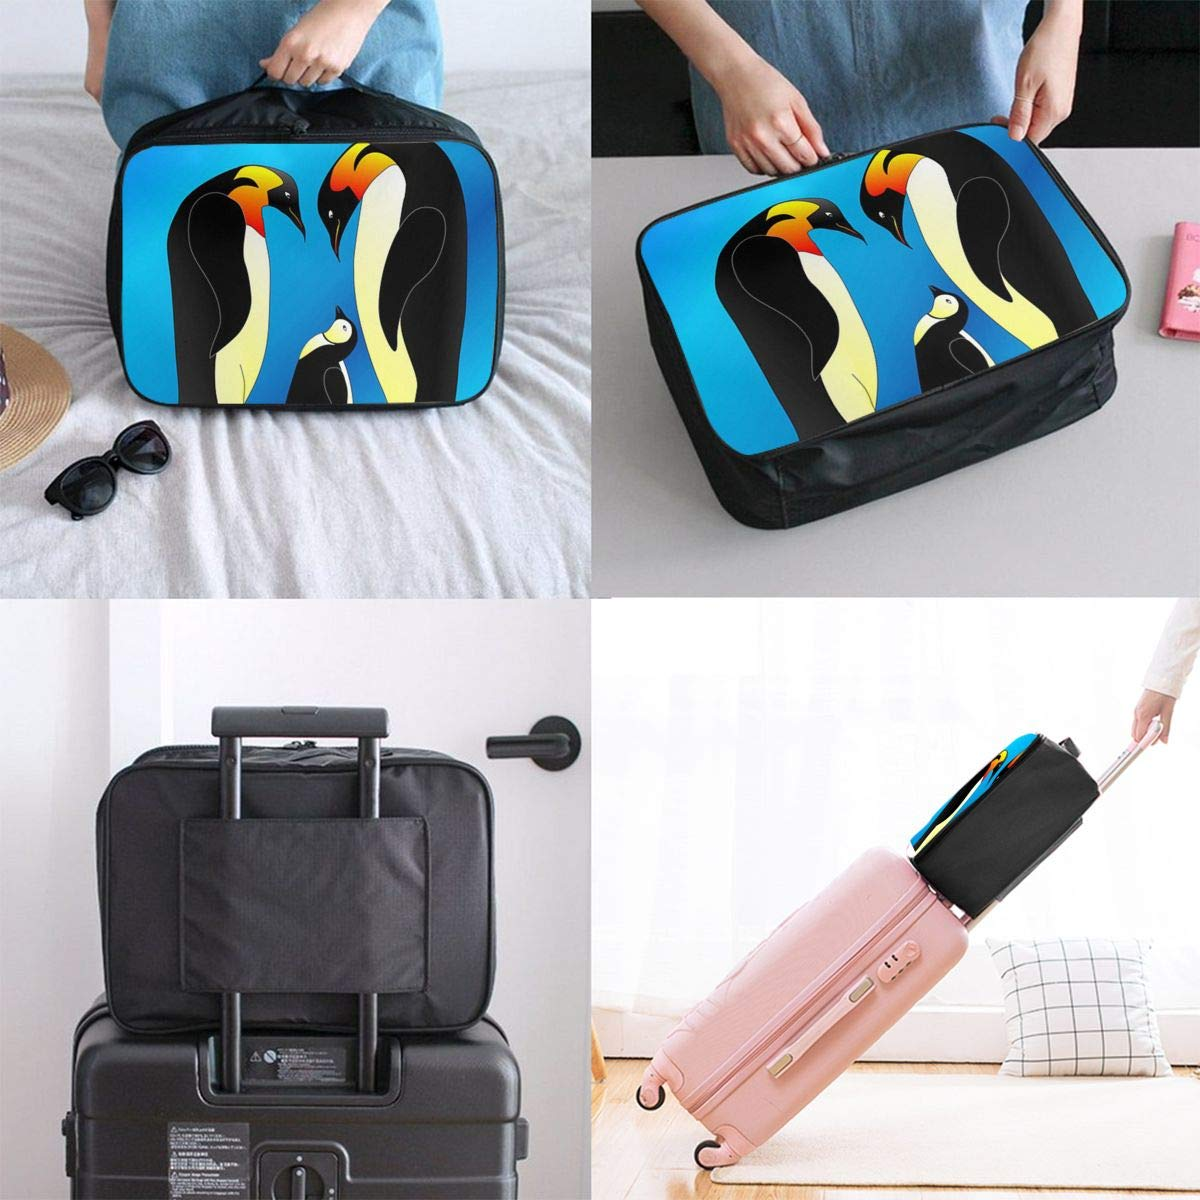 Penguin Family Travel Bag Lightweight Luggage Bags Duffle Bag Large Capacity Travel Organizer Bag